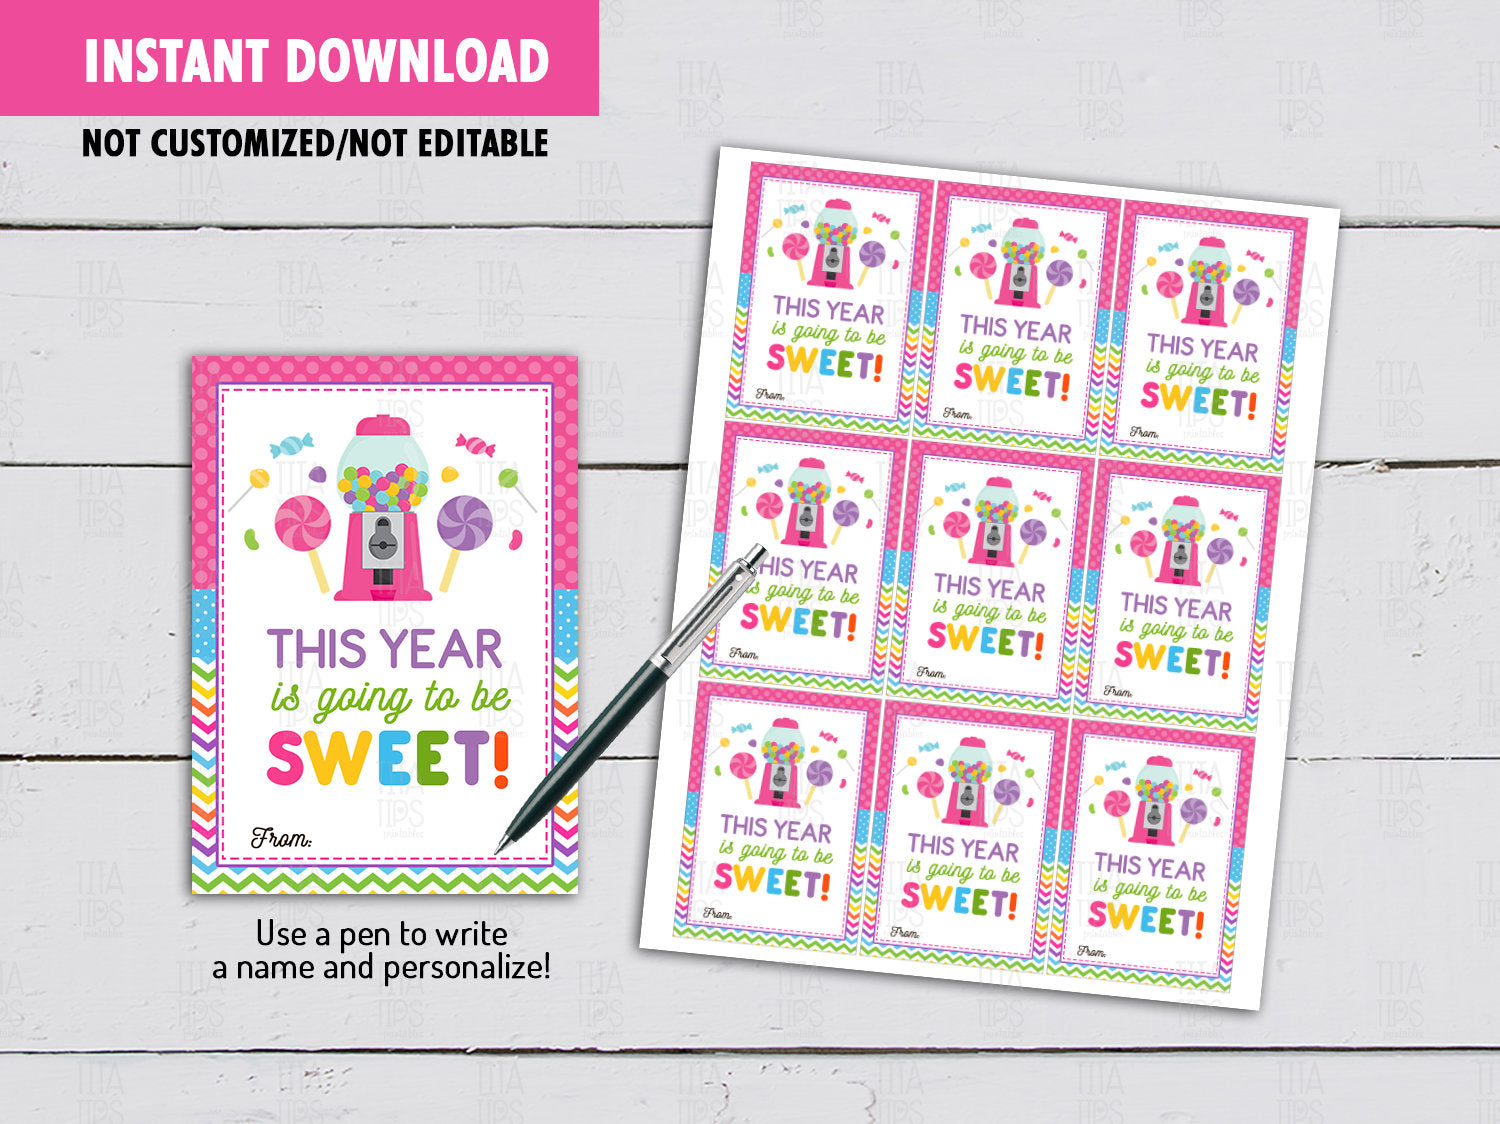 This year is going to be SWEET, Back to School Gifts Ideas, Instant Download - TitaTipsPrintables